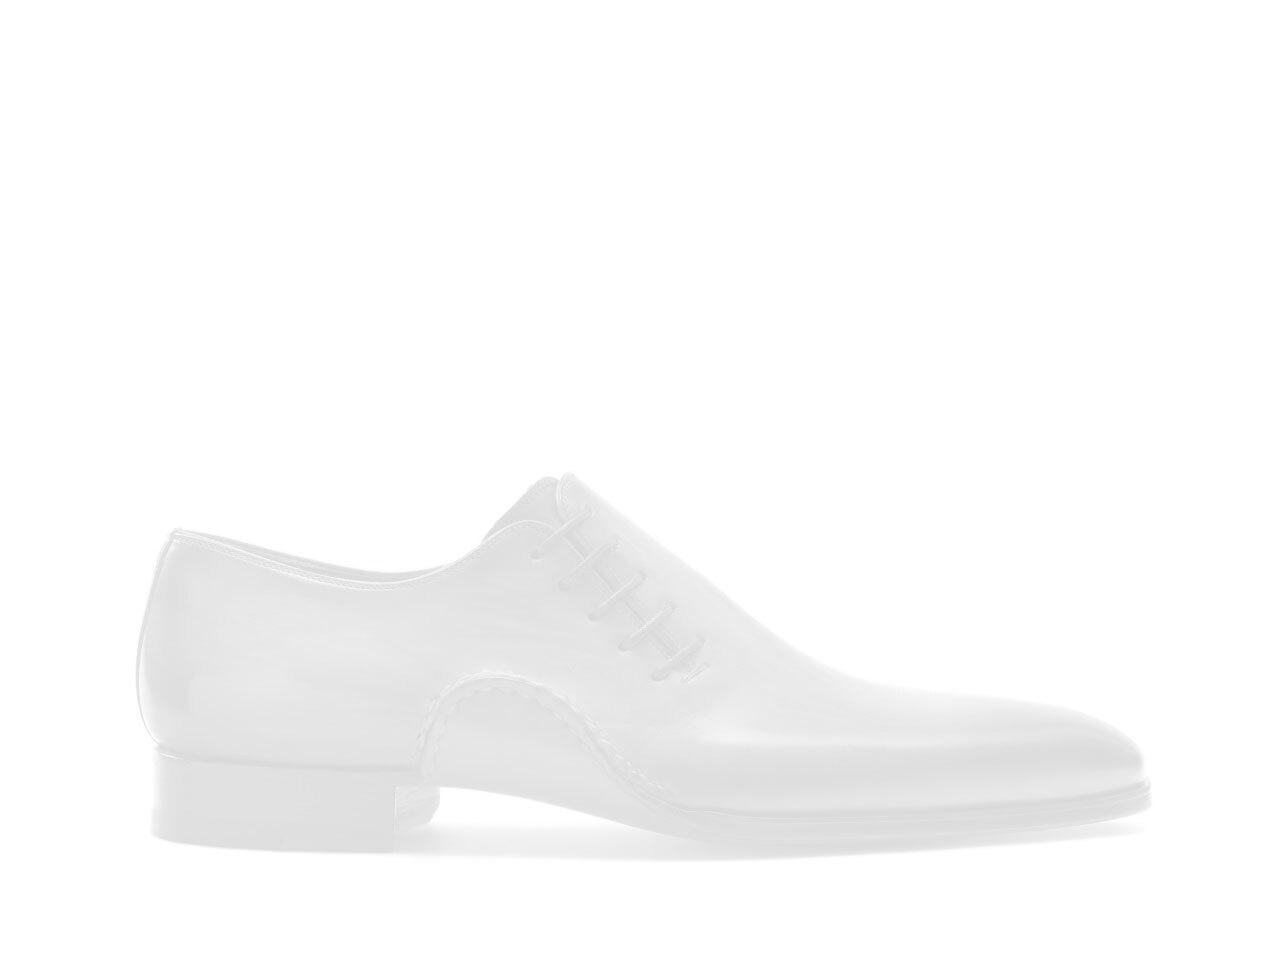 Side view of the Magnanni Ecija Grey Men's Sneakers